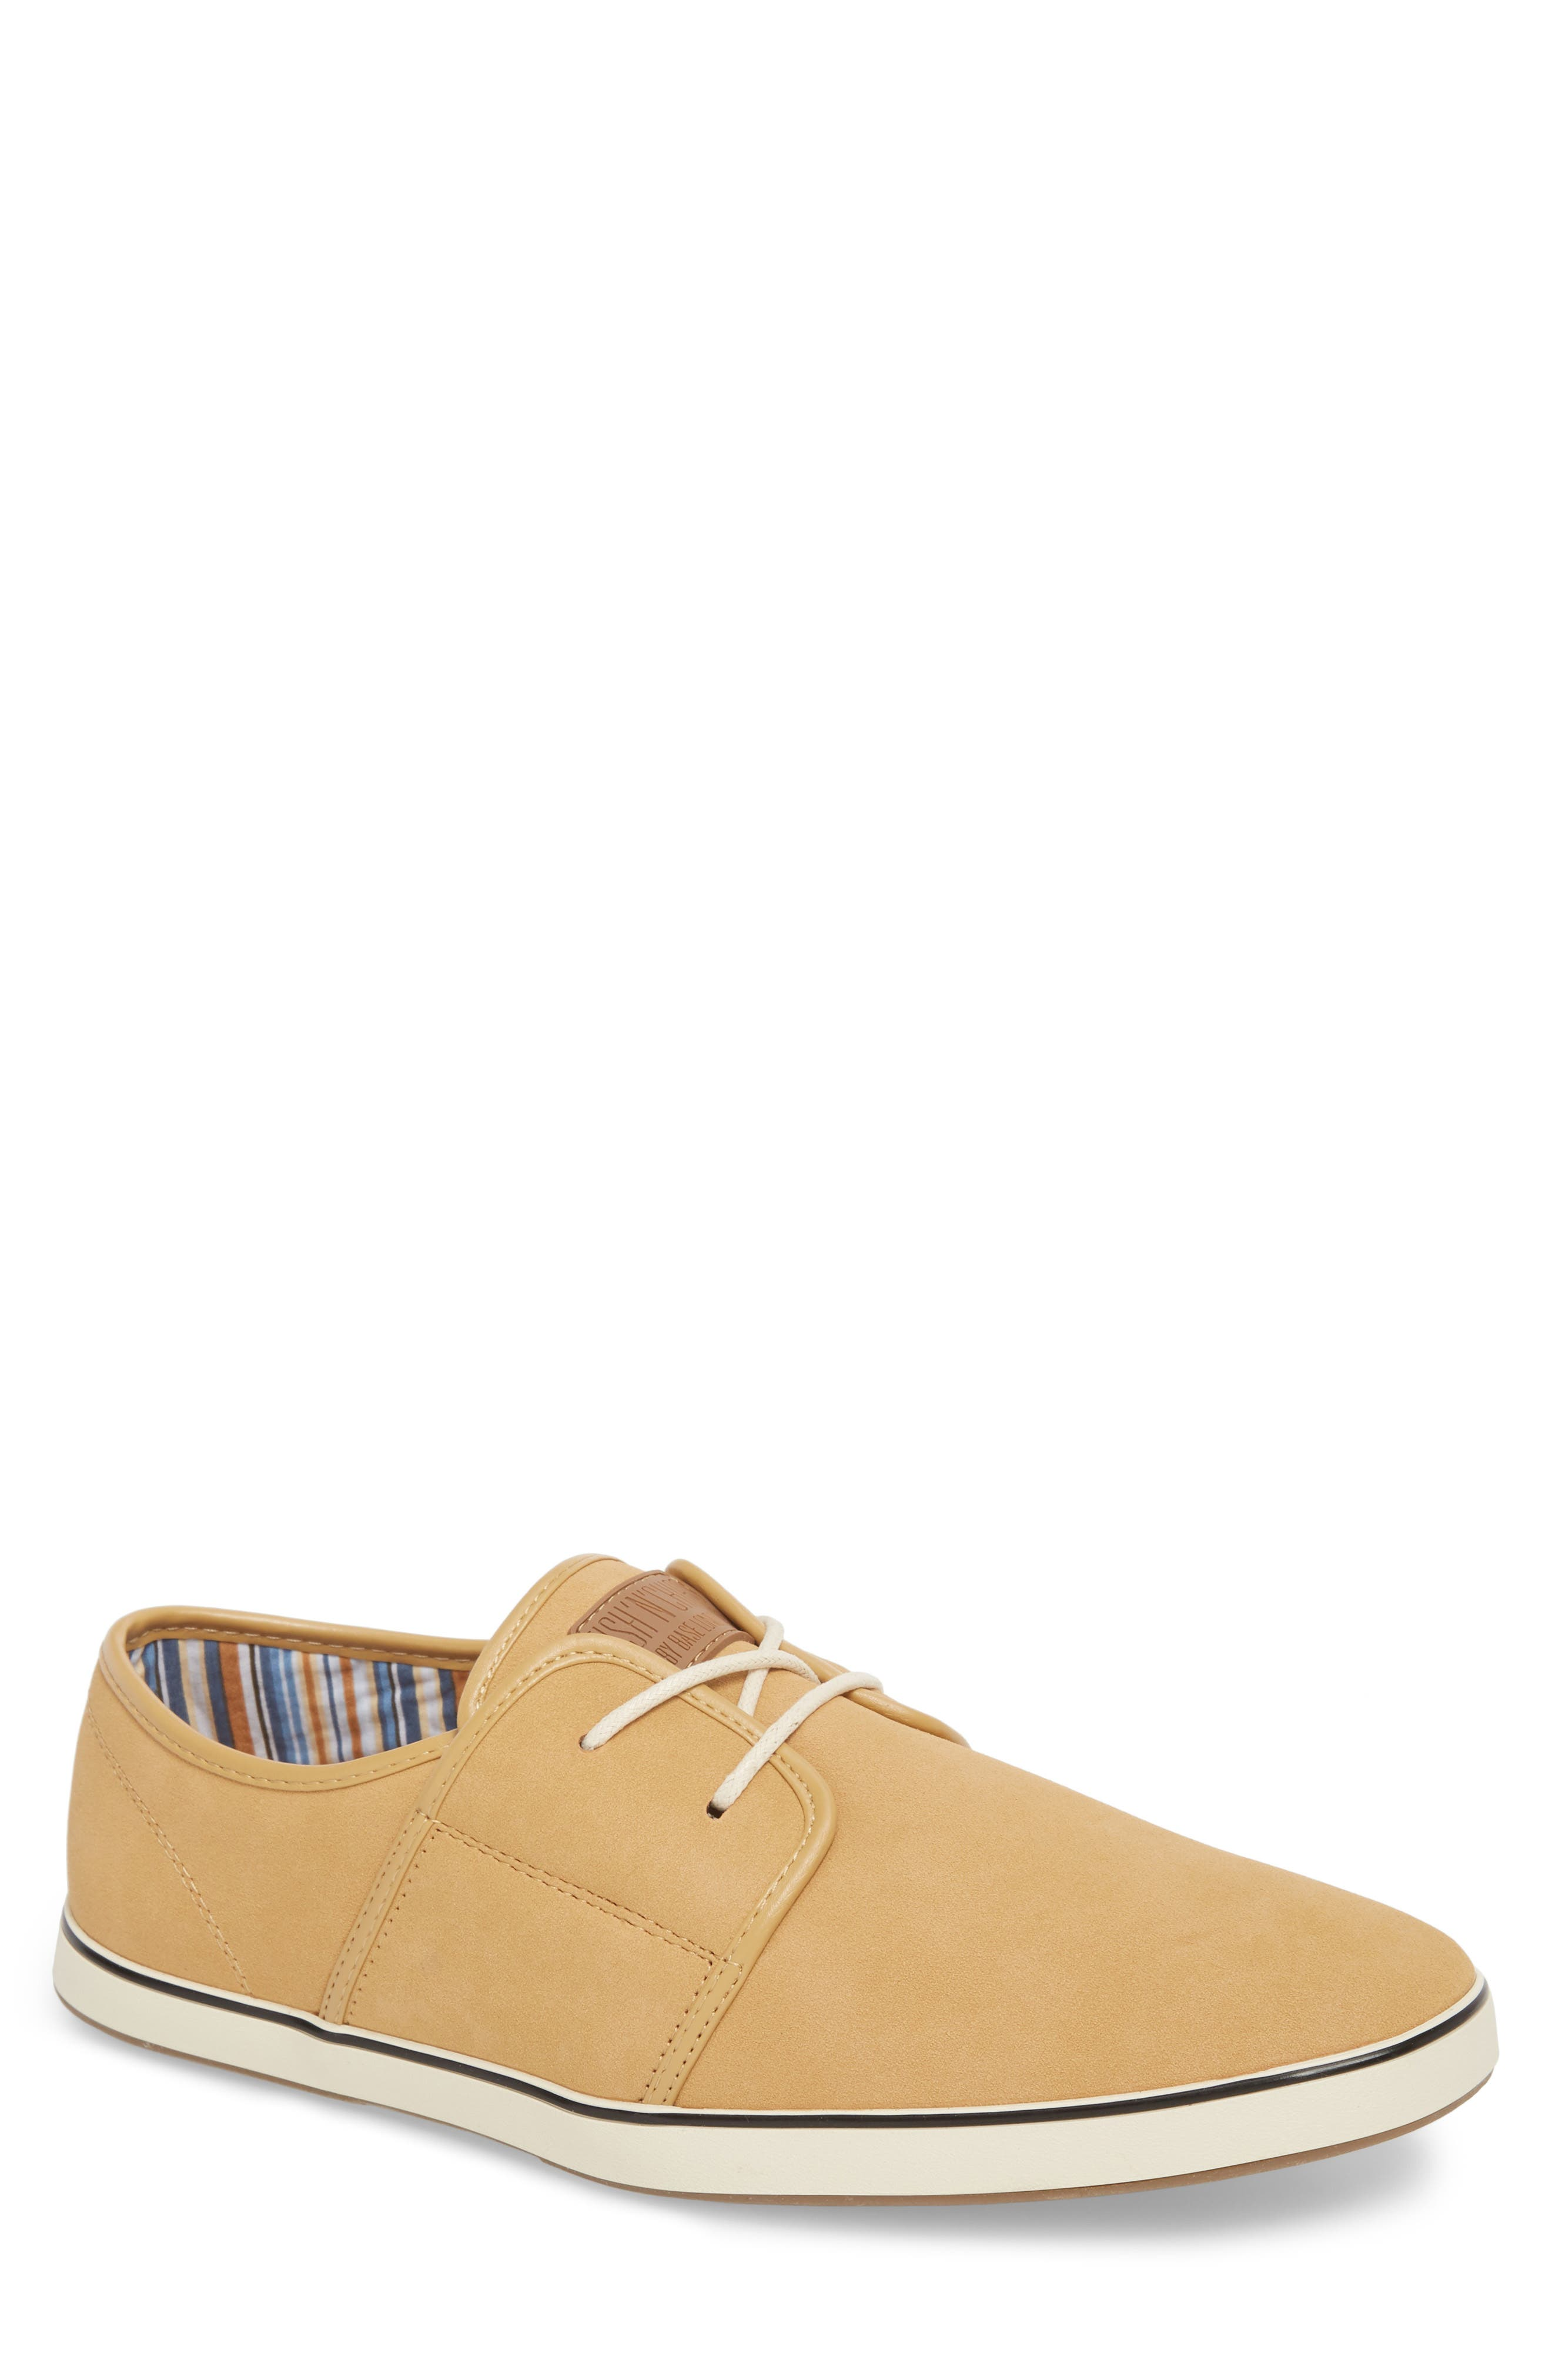 Fish 'N' Chips Surrey Low Top Sneaker,                             Main thumbnail 1, color,                             SOFT BROWN FAUX SUEDE